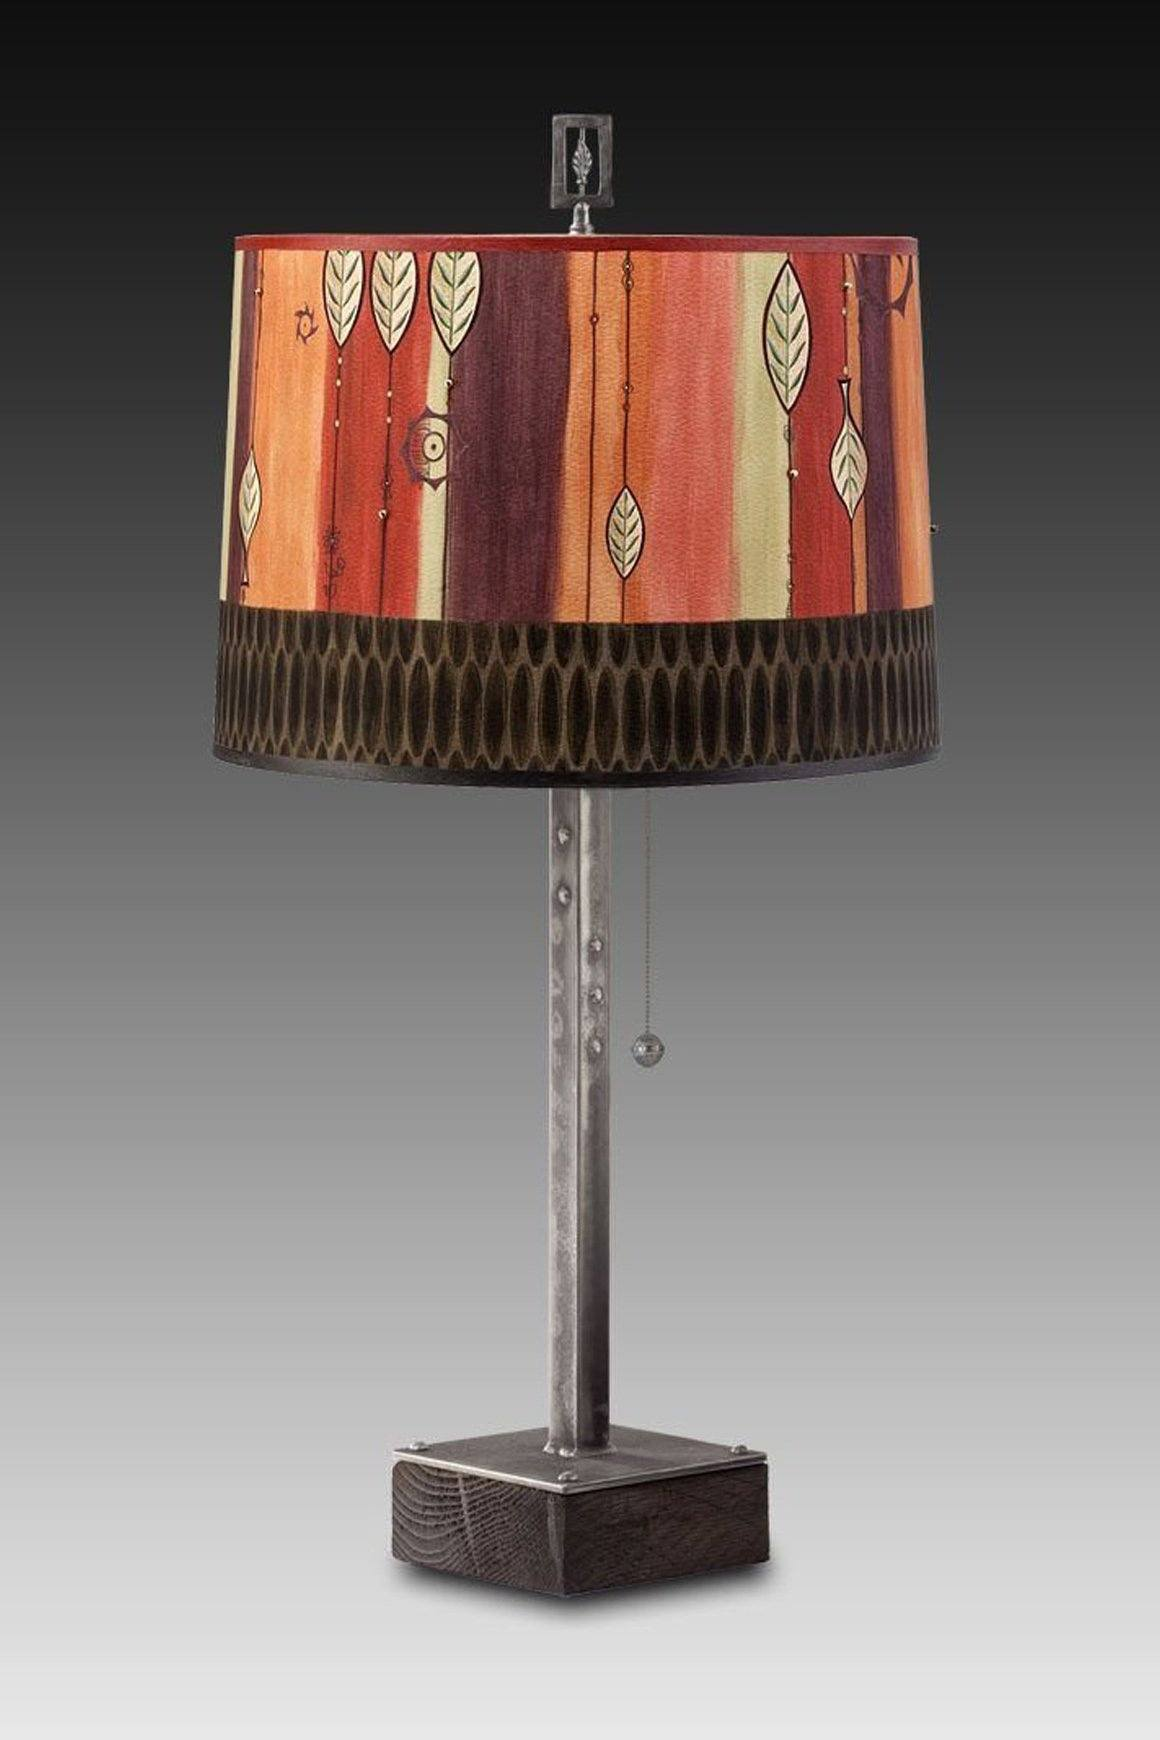 Steel Table Lamp on Wood with Large Drum Shade in Leaf Stripe Red